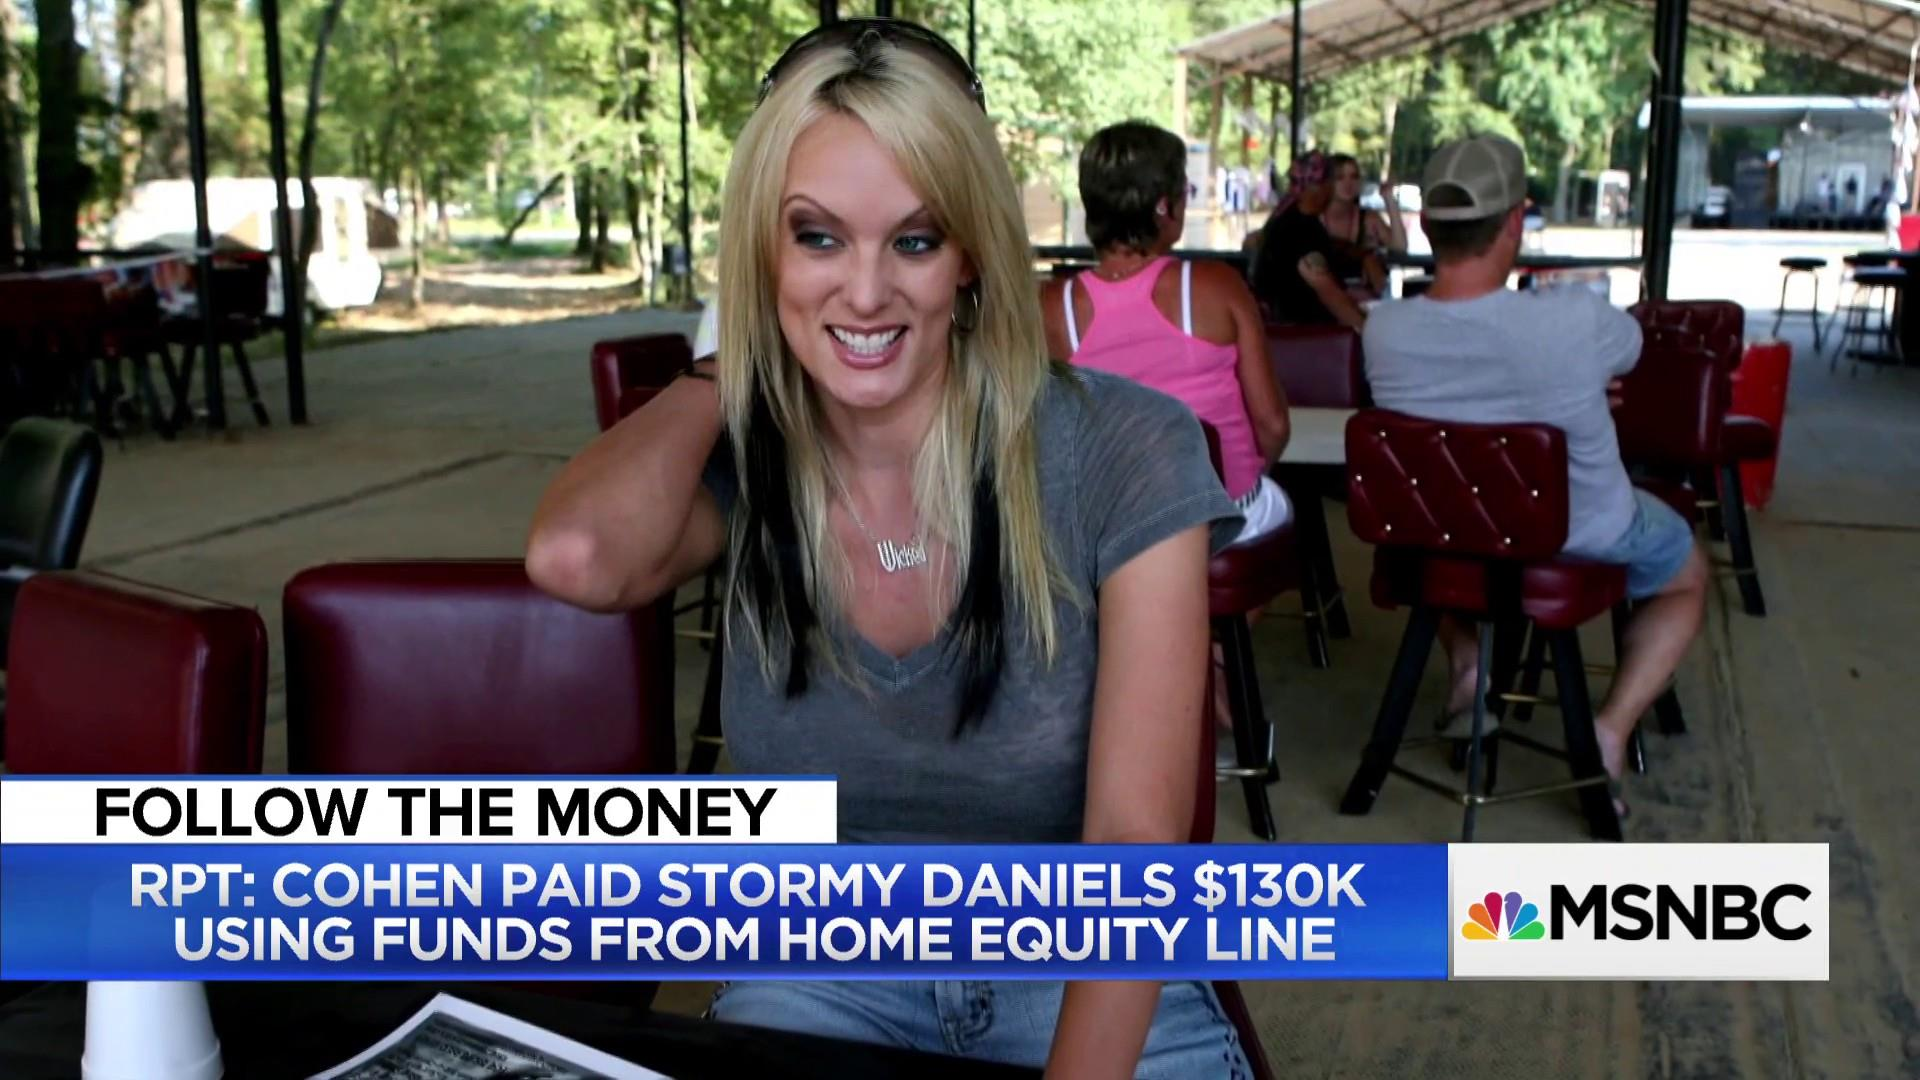 Attorney on Stormy & POTUS: Ethical duty to keep client informed